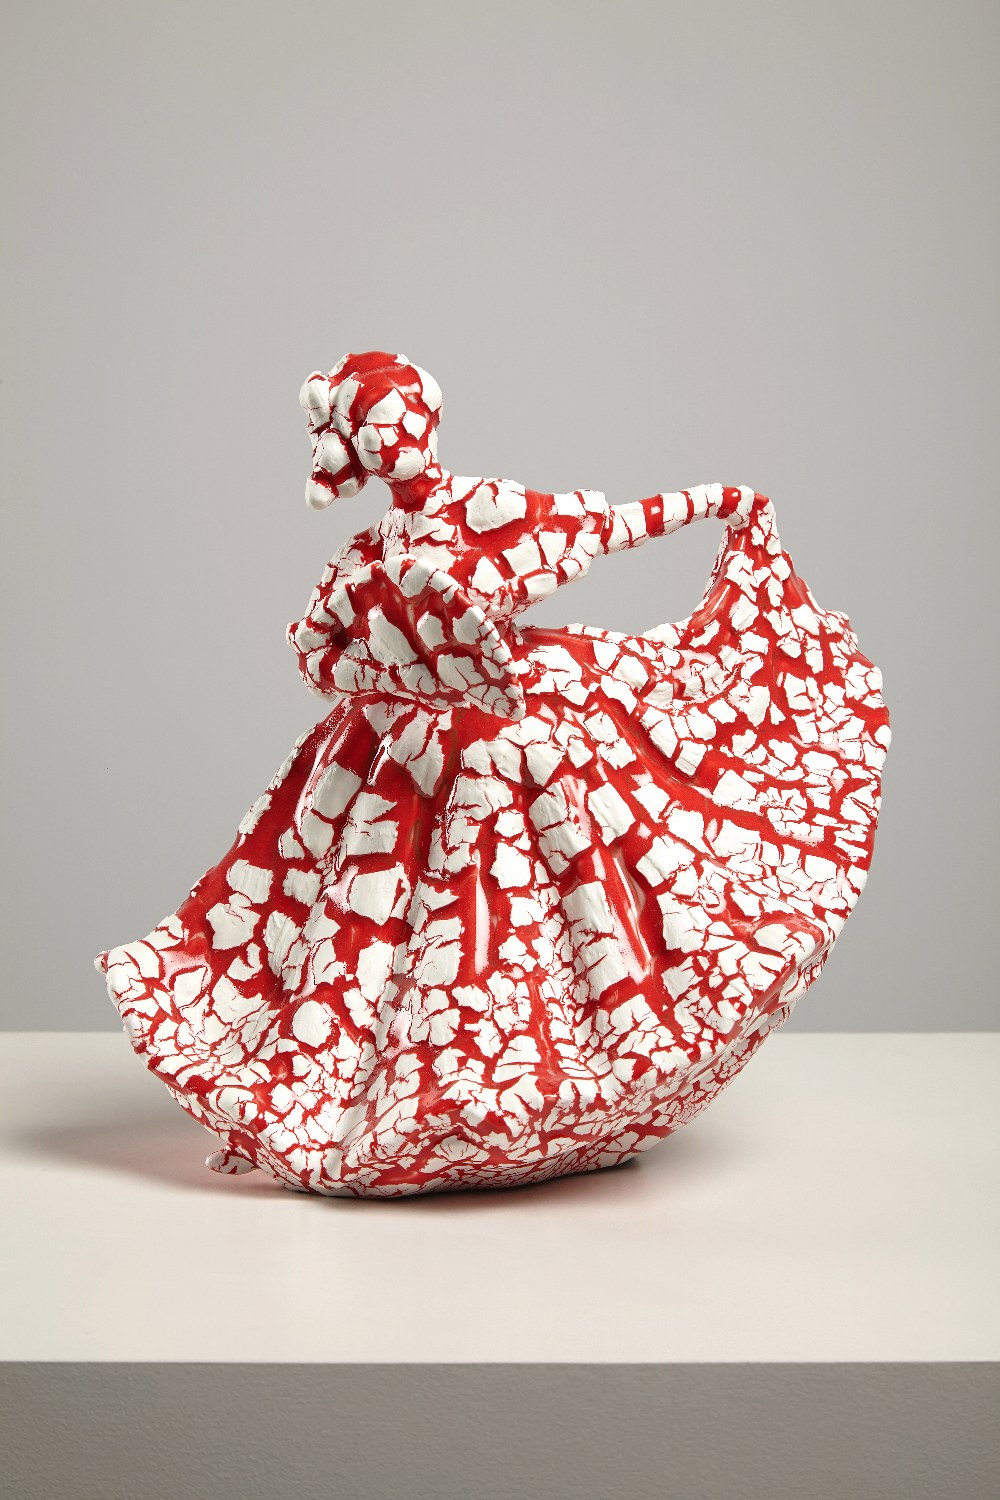 Lot 53 - JESSICA HARRISON (born 1982); ROYAL DOULTON FIGURINE ELAINE HN 3307 EXCELLENT CONDITION (2015),